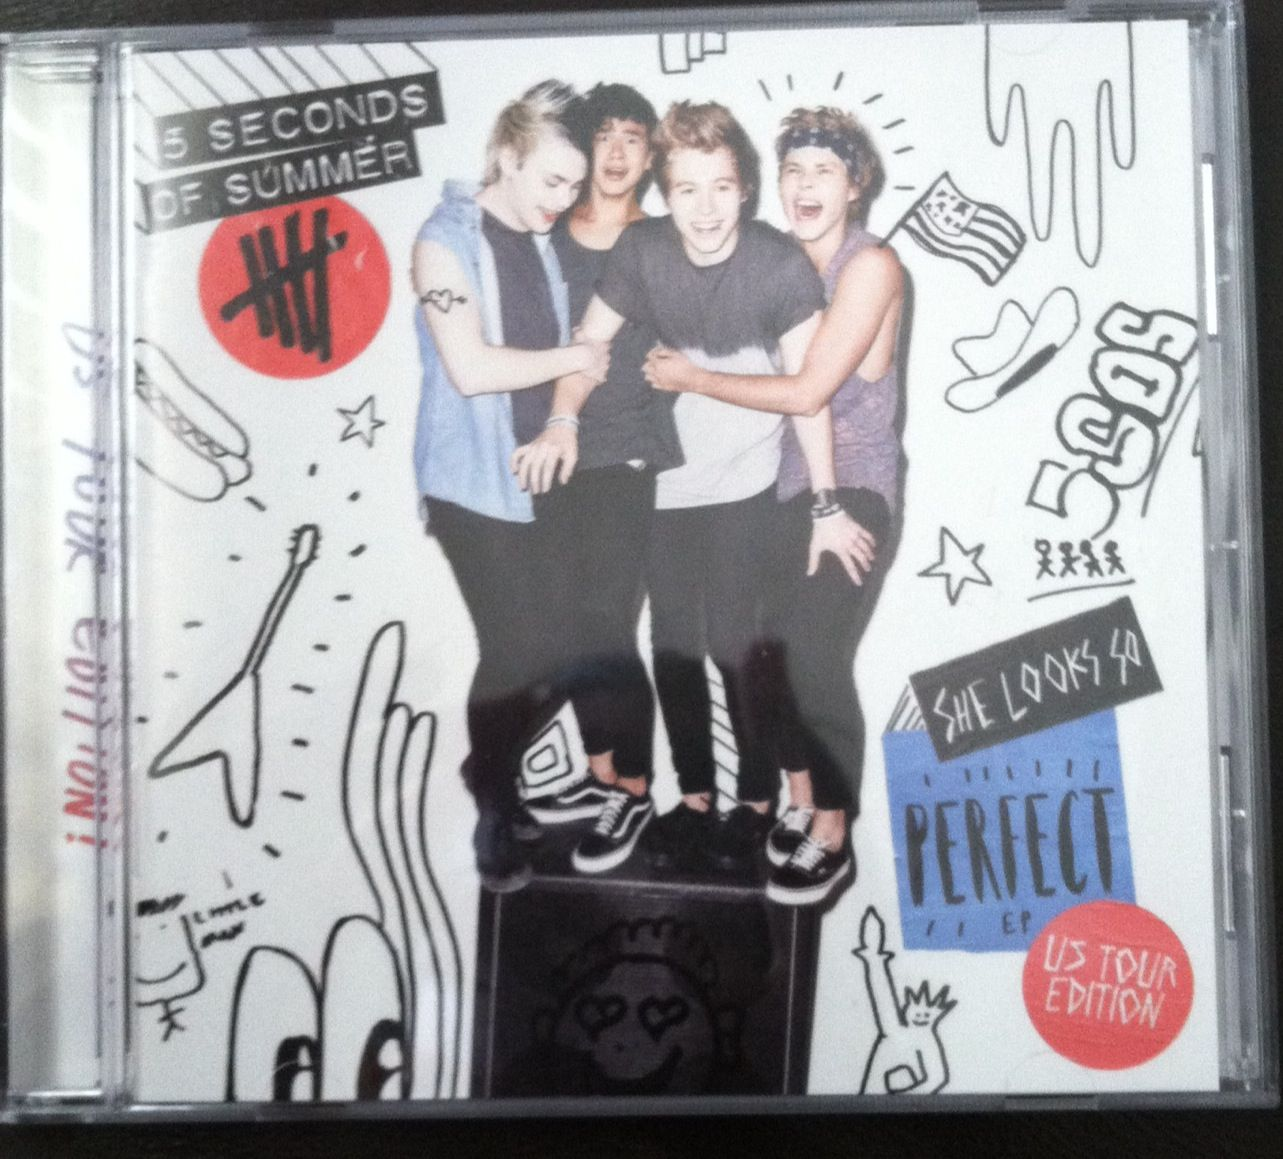 5 Seconds Of Summer She Looks So Perfect Ep Us Tour Edition Amazing She Looks So Perfect Book Cover 5 Seconds Of Summer